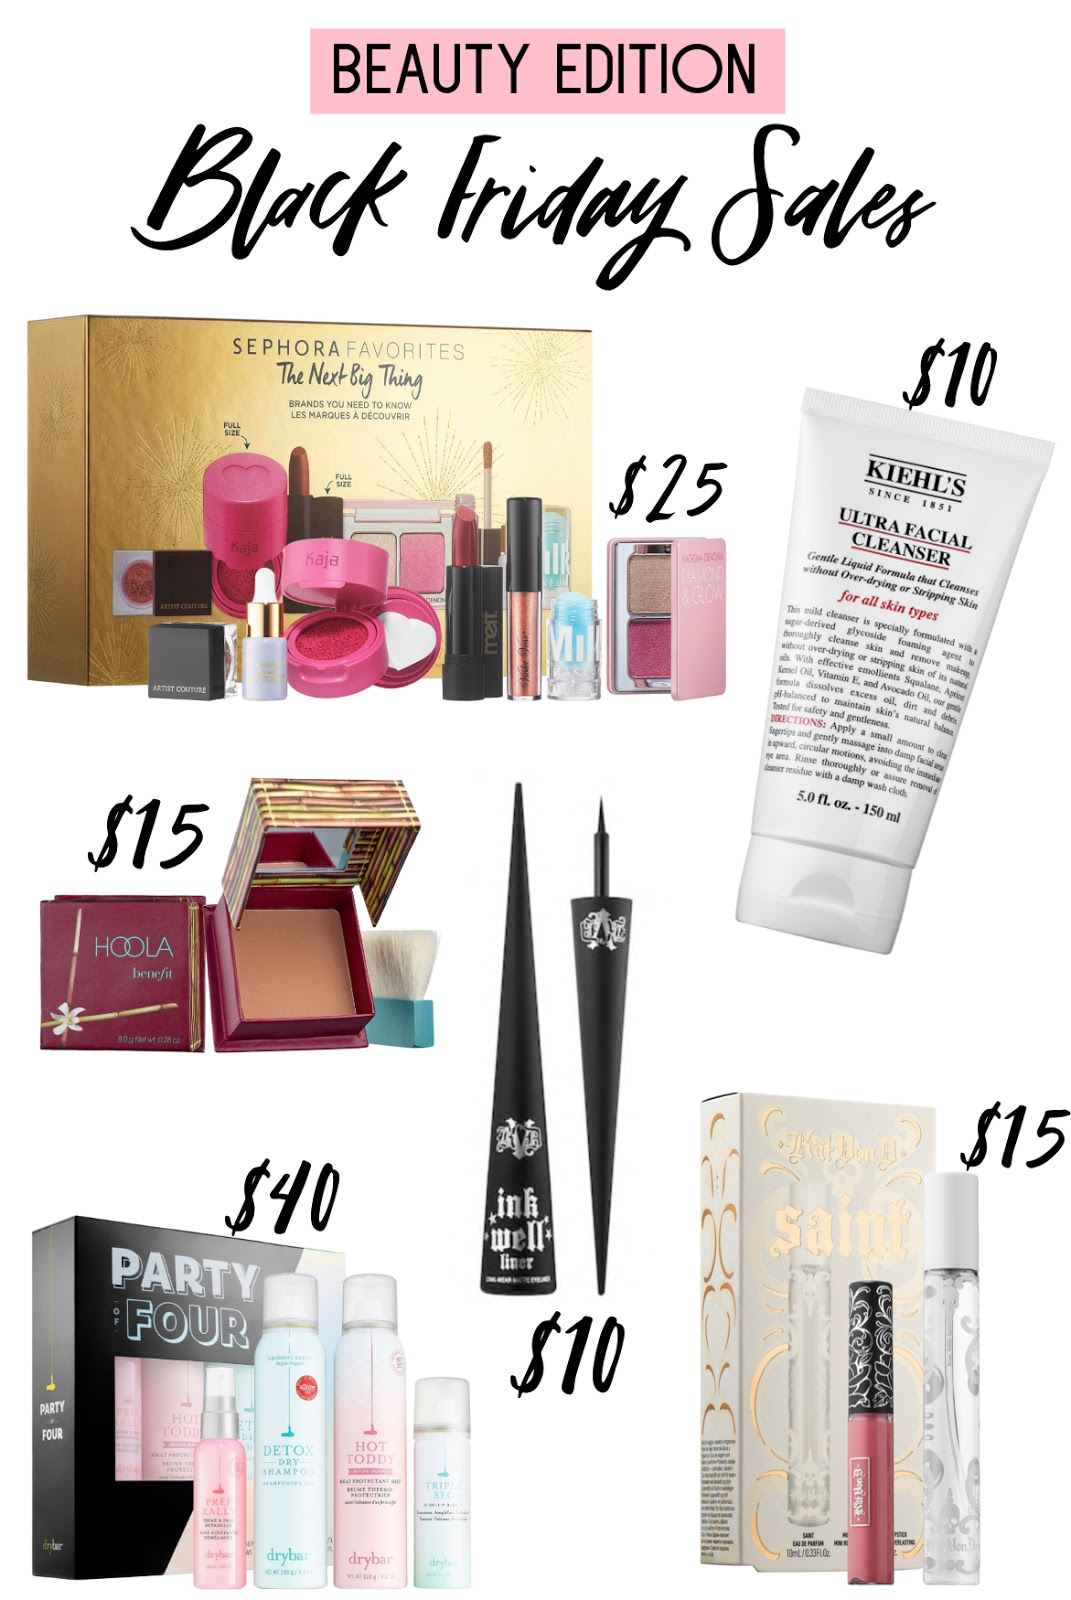 Black Friday Sales and Cyber Monday Deals 2019 | Affordable by Amanda Sephora Cyber Monday Beauty Deals and Sales up to 50% Off